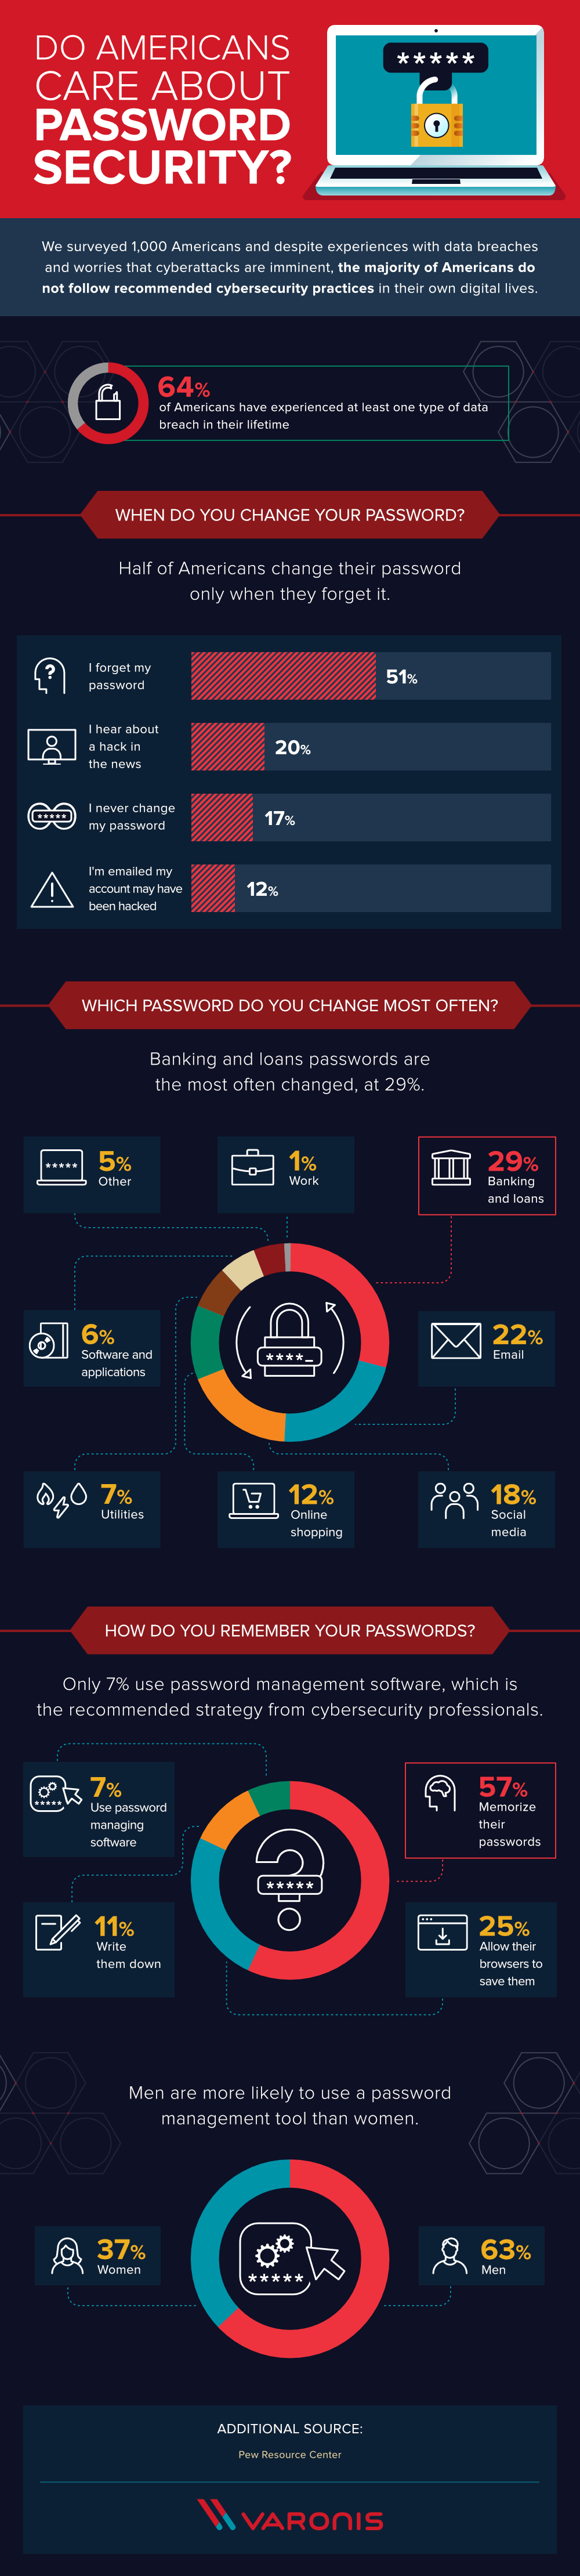 Do Americans Ever Change Their Passwords #infographic